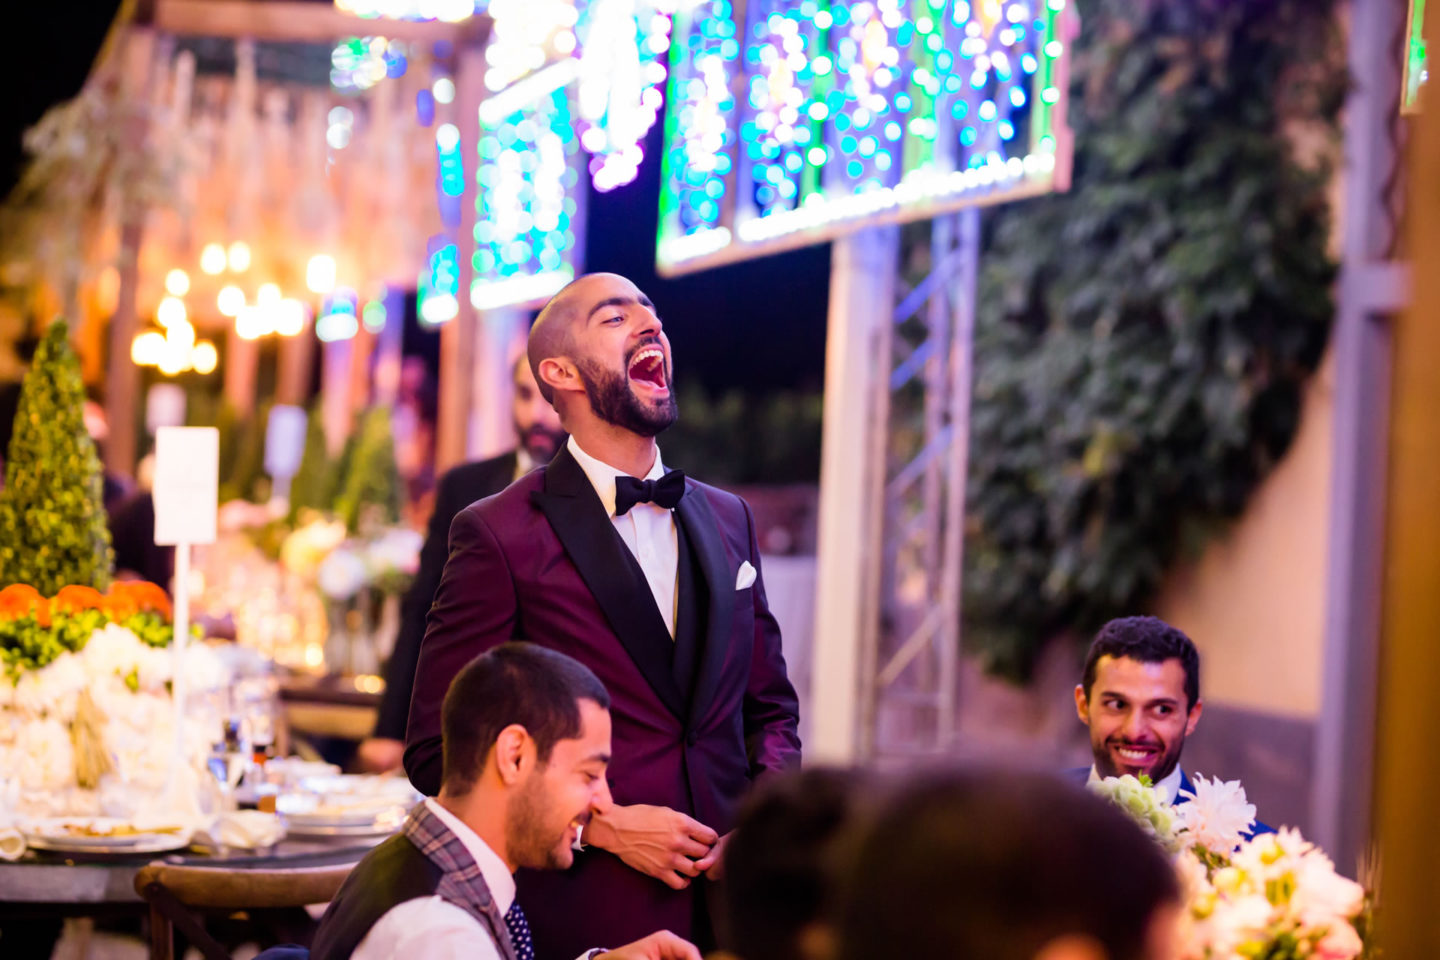 Laughter :: Luxury wedding at Il Borro :: Luxury wedding photography - 57 :: Laughter